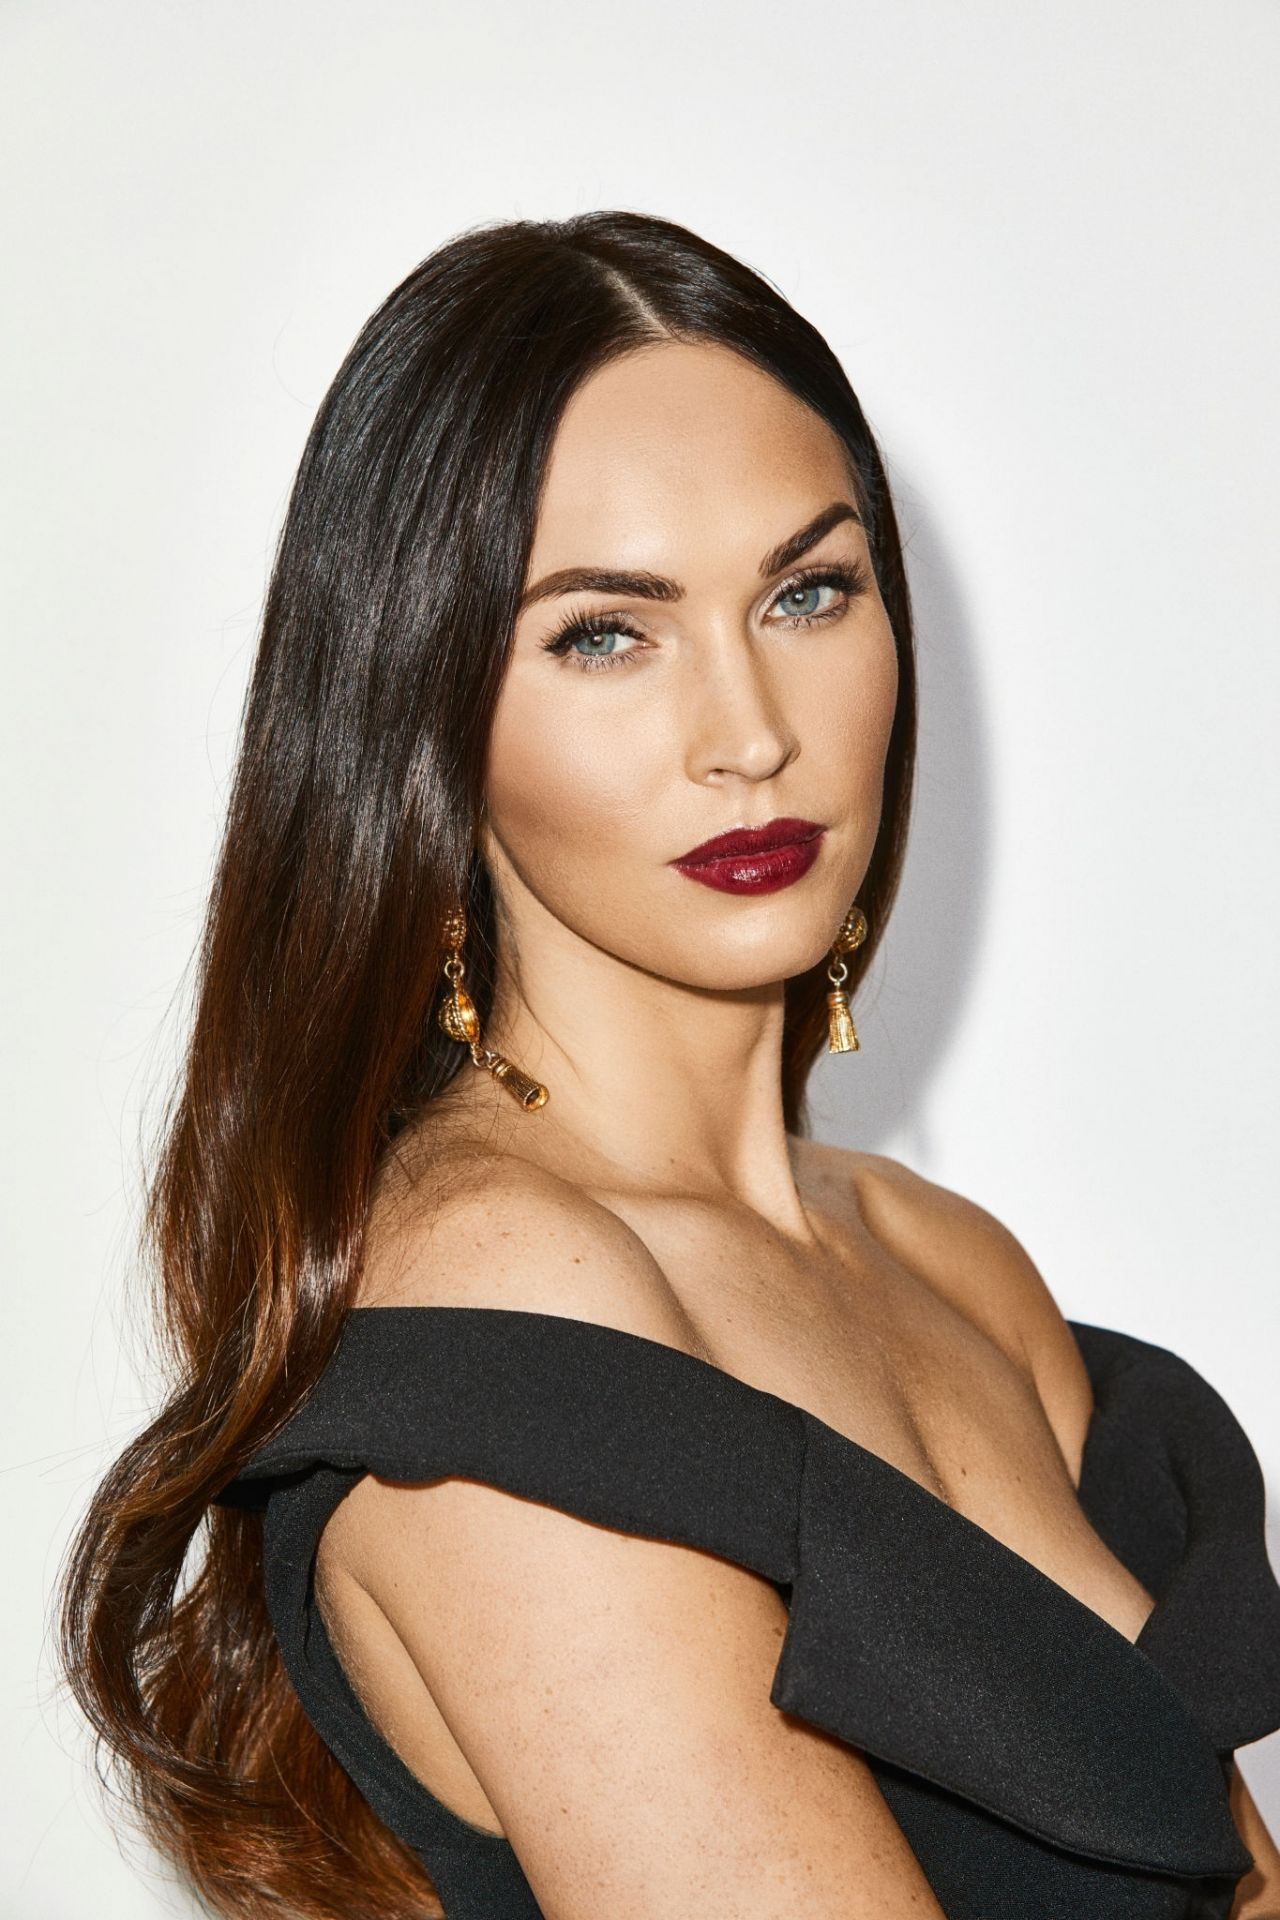 Megan Fox - The New York Times December 2018 (Part II) Megan Fox